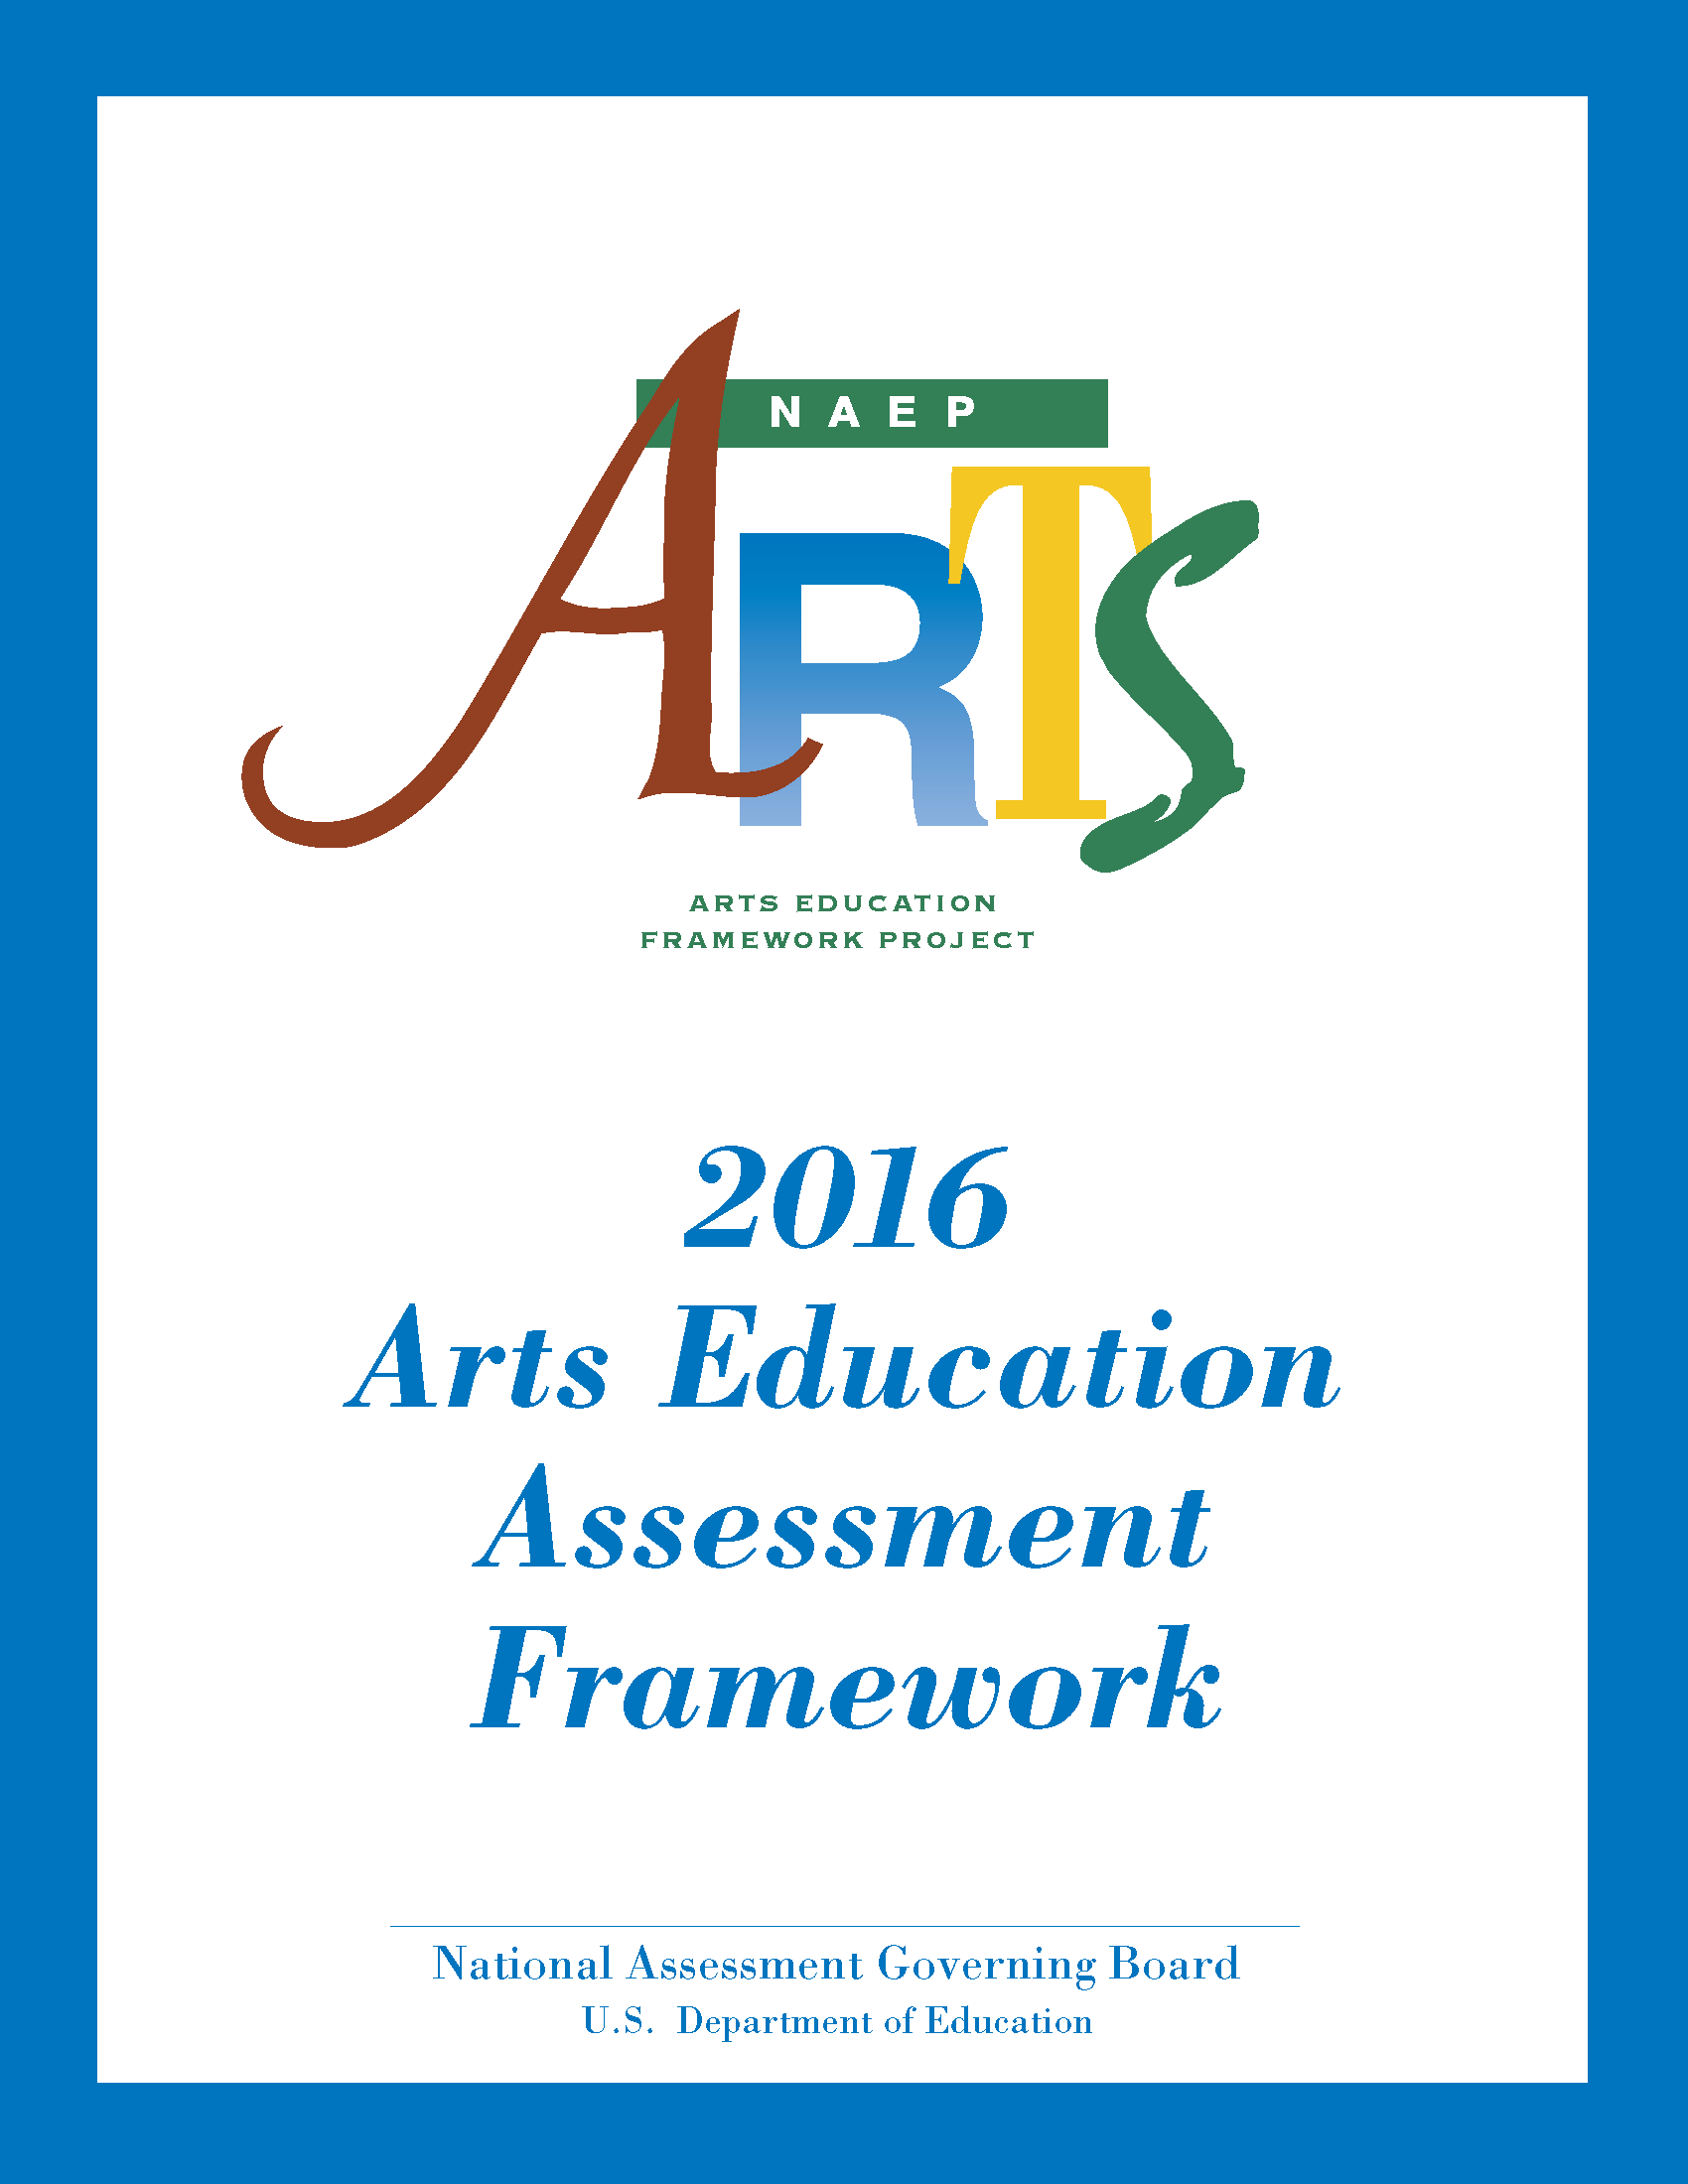 Cover for 2016 Arts Education Assessment Framework